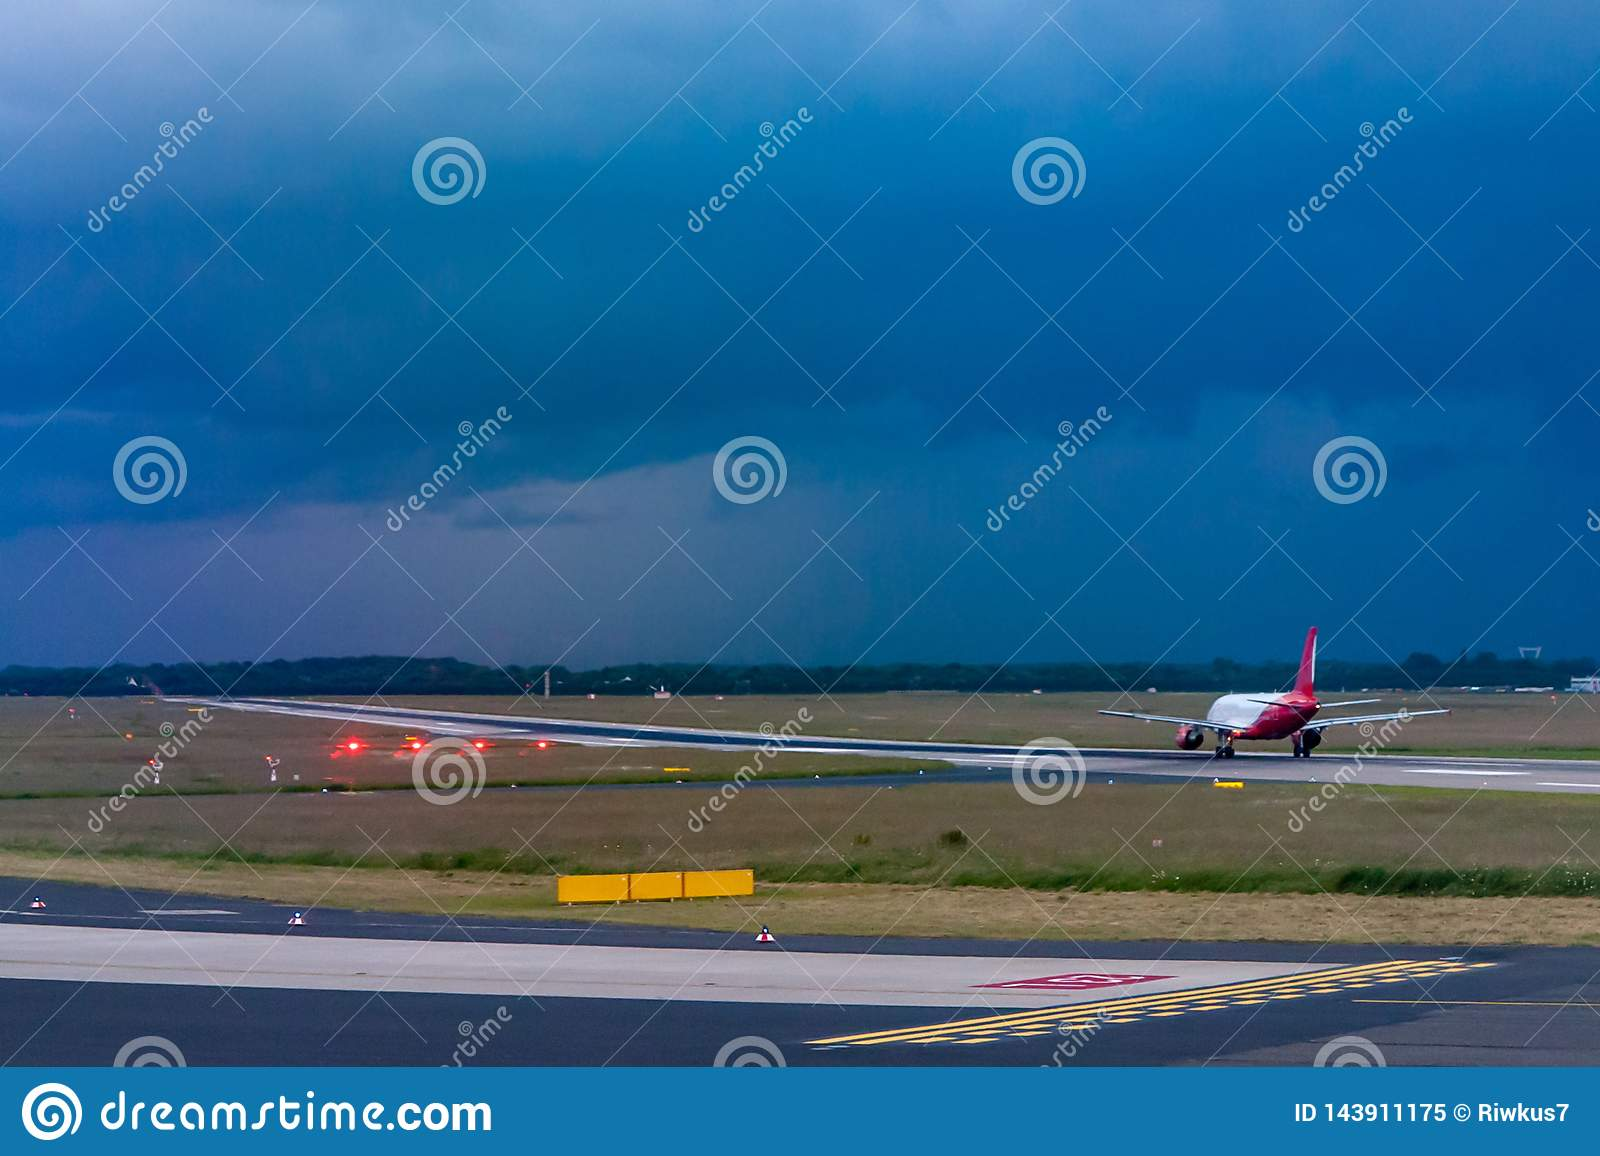 Taking off the plane on the runway